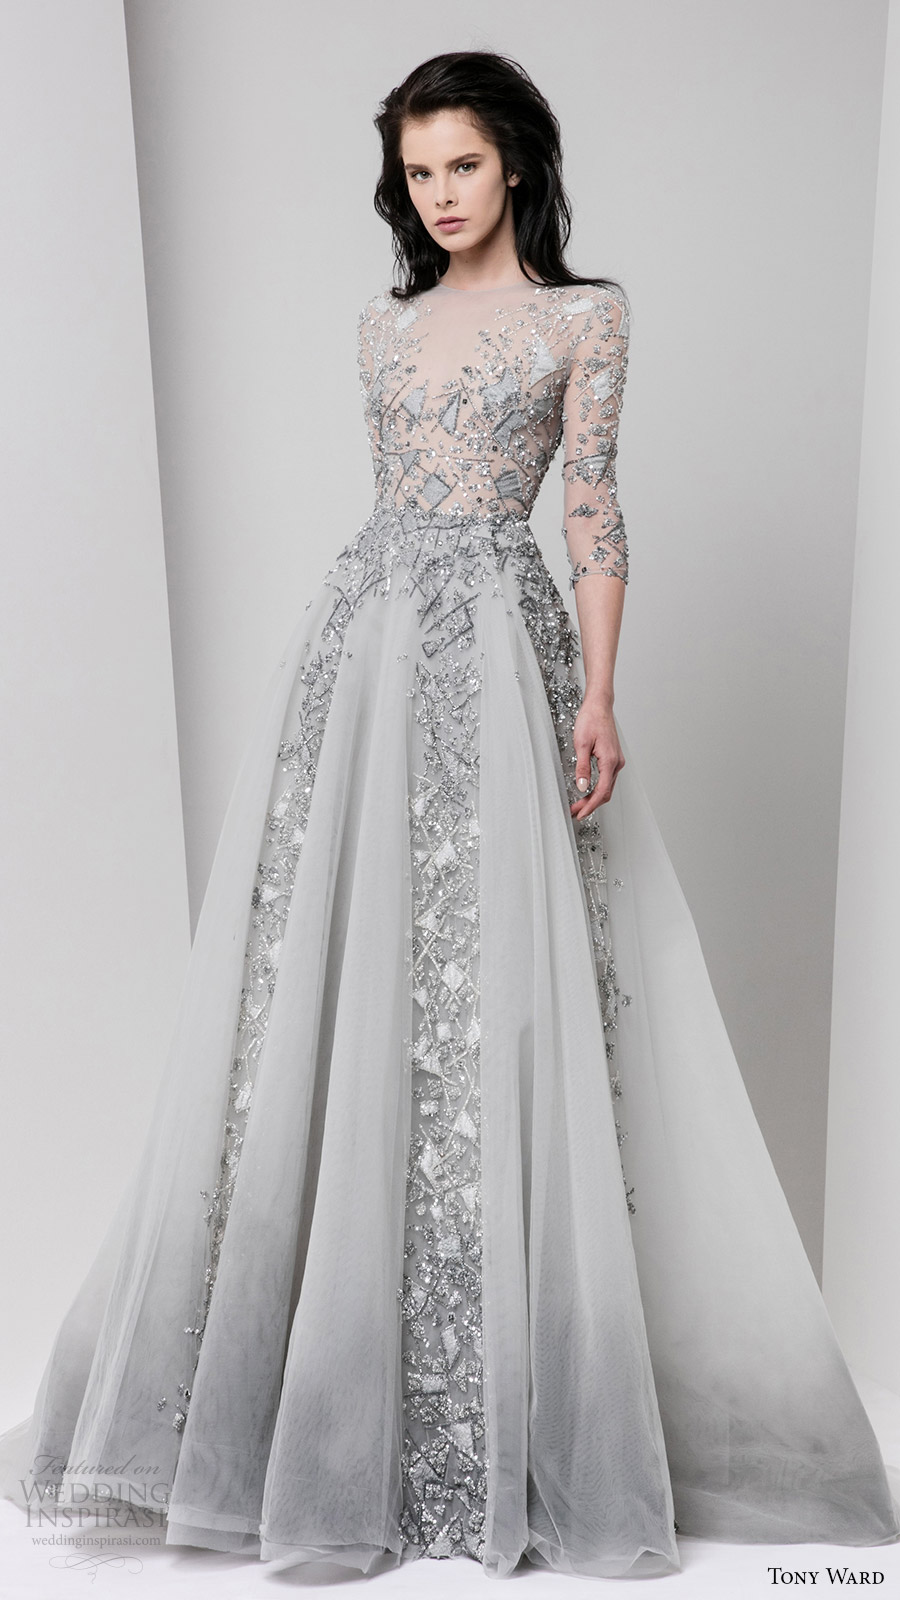 Trubridal Wedding Blog | Ready-to-Wear Dresses Archives - Trubridal ...